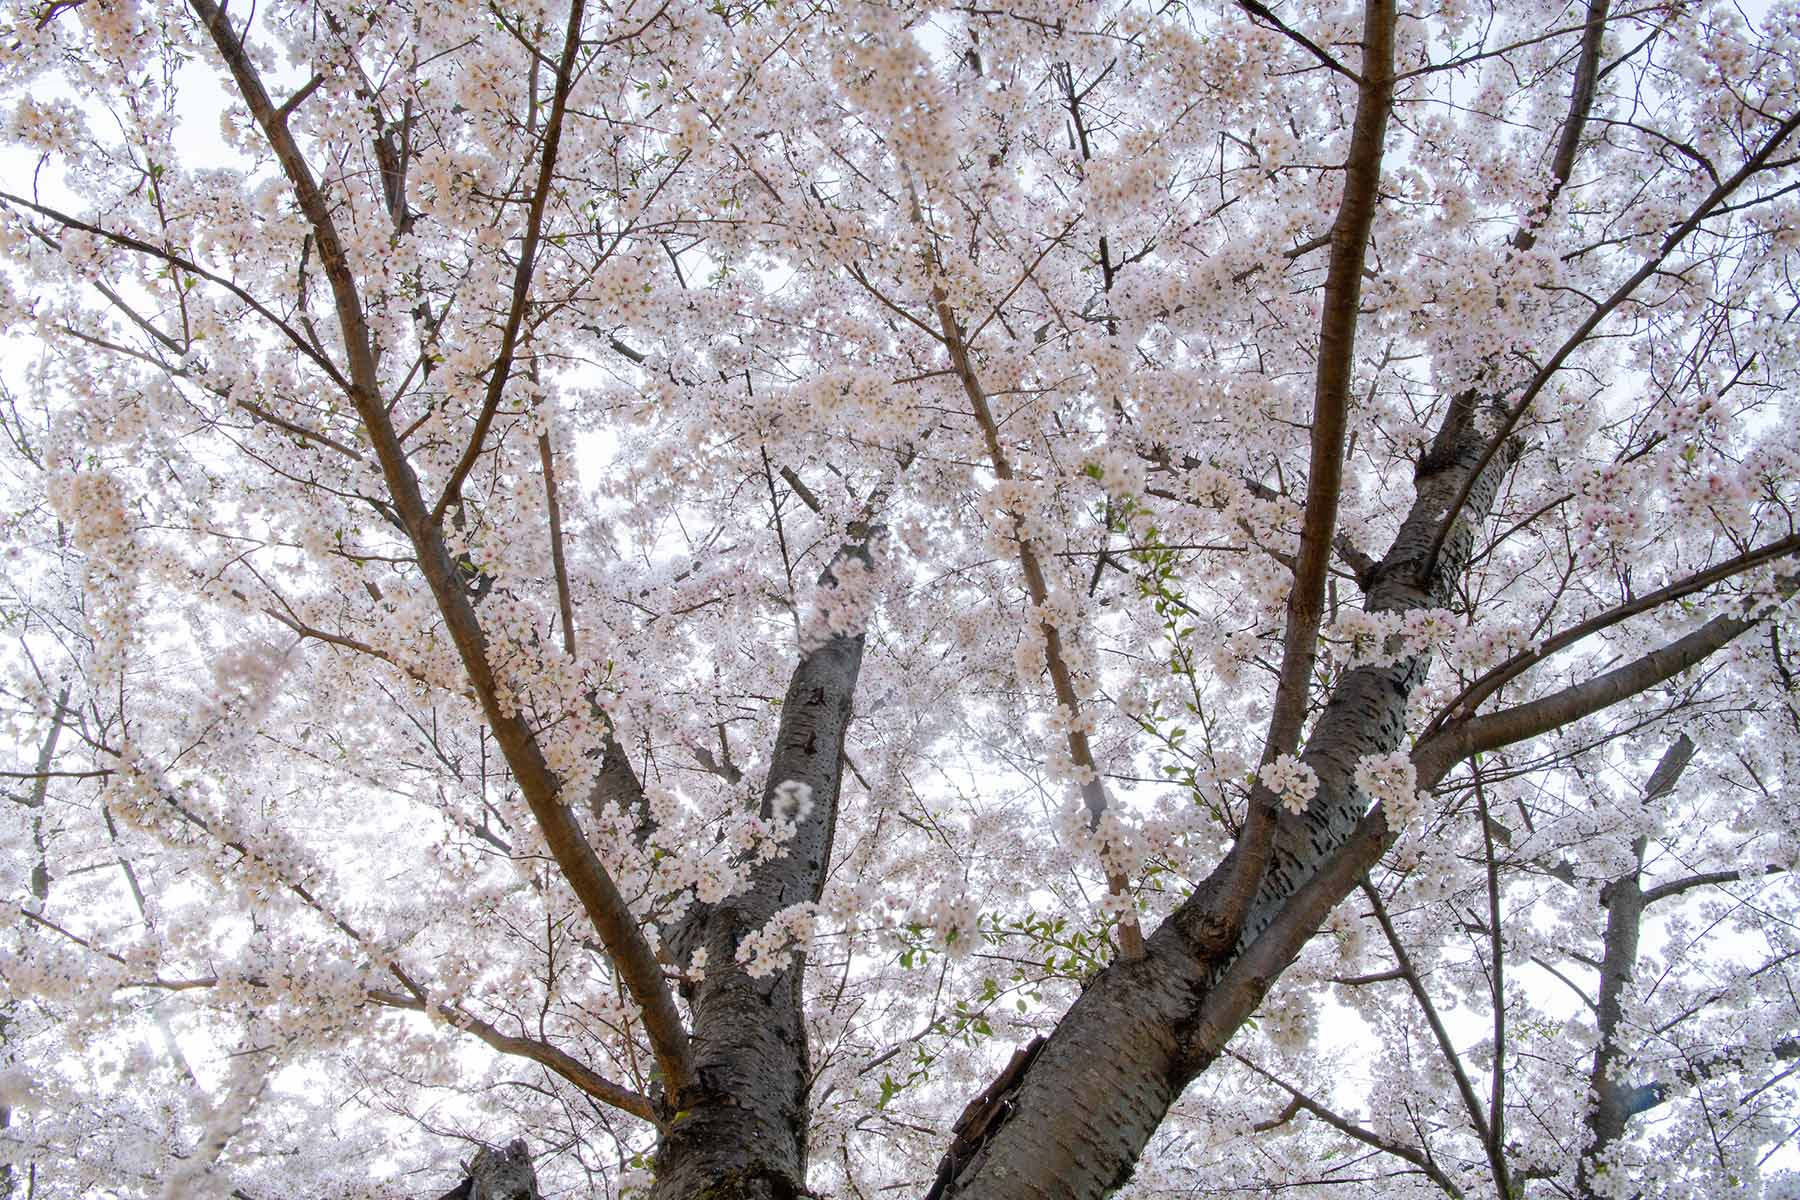 A flowering cherry blossom tree